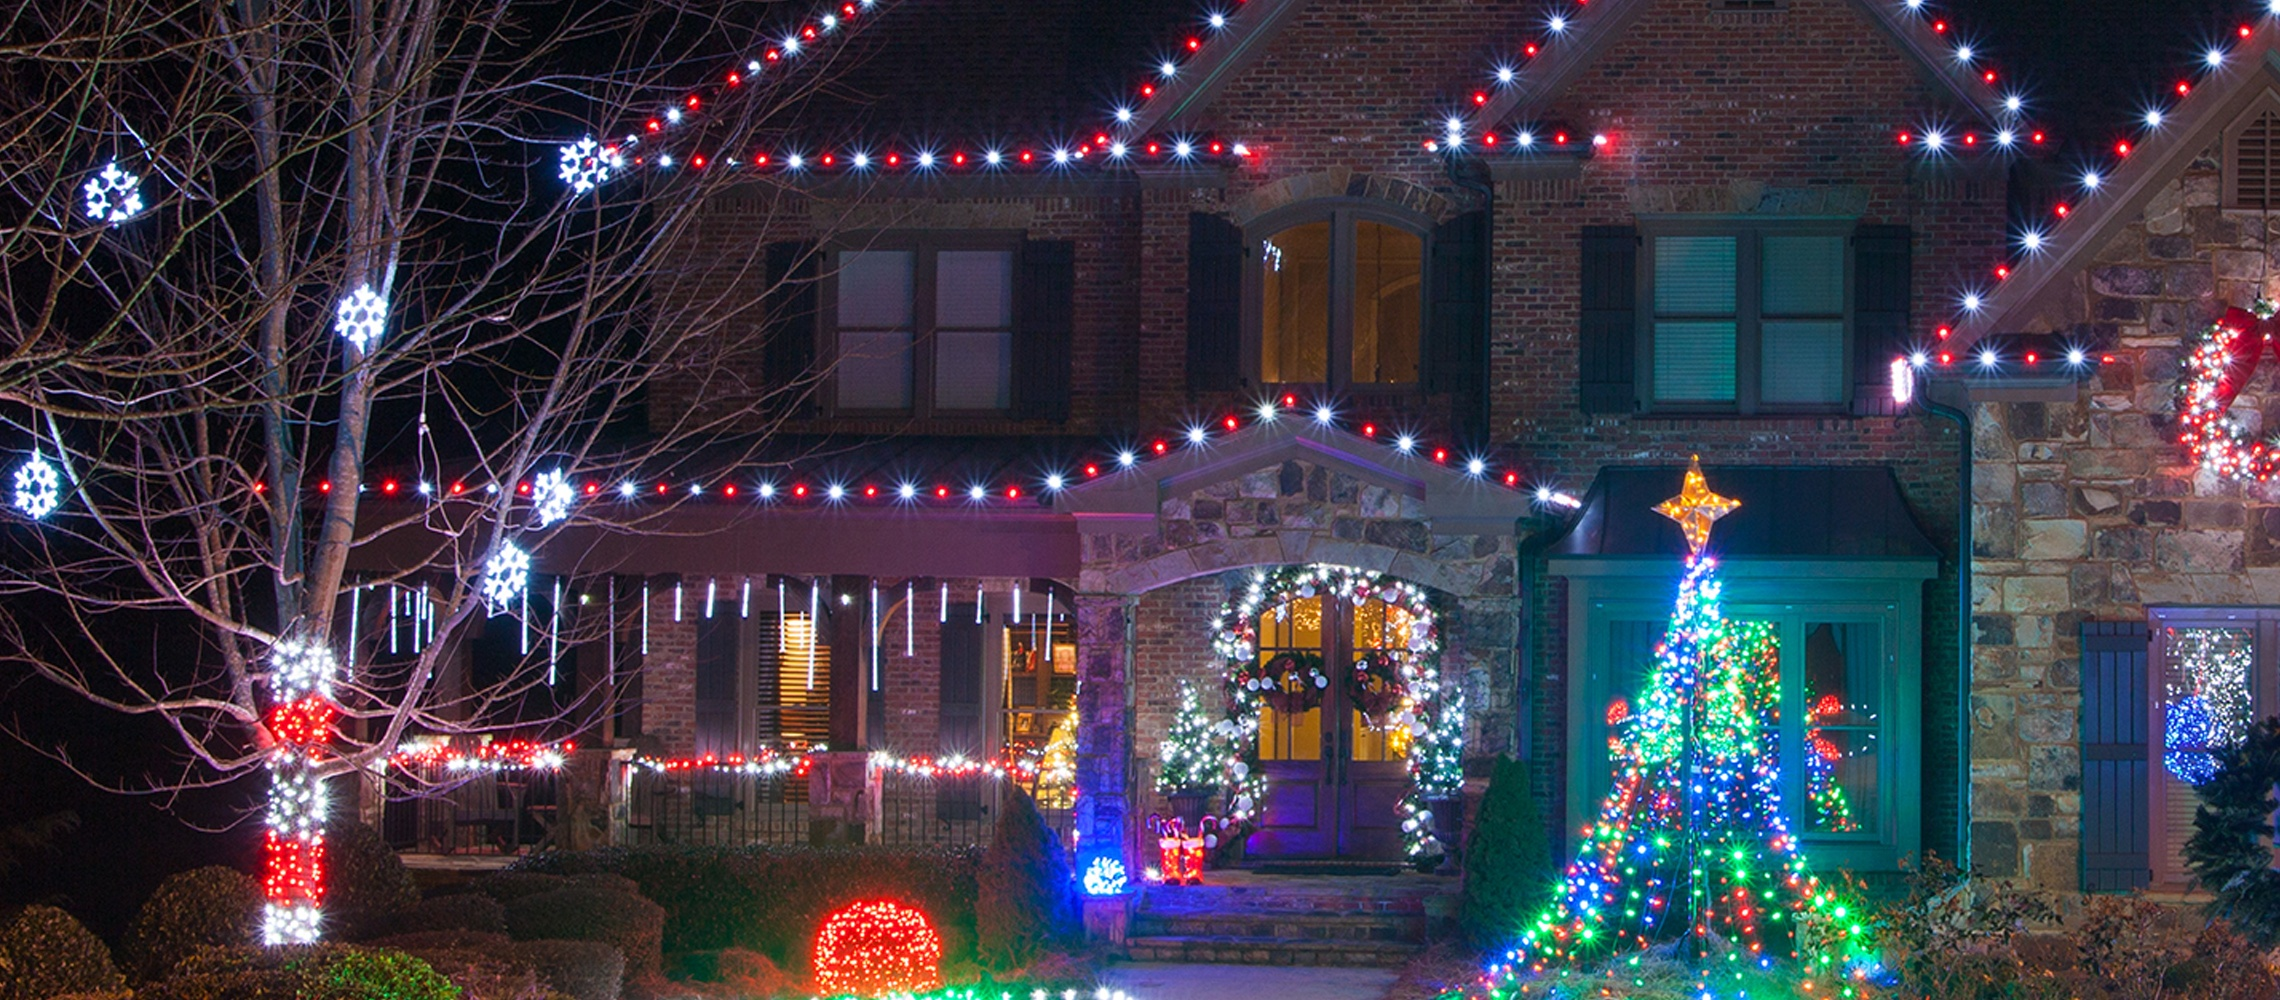 grand-cascade-roof-lights-image9.jpg & Outdoor Christmas Lights Ideas For The Roof